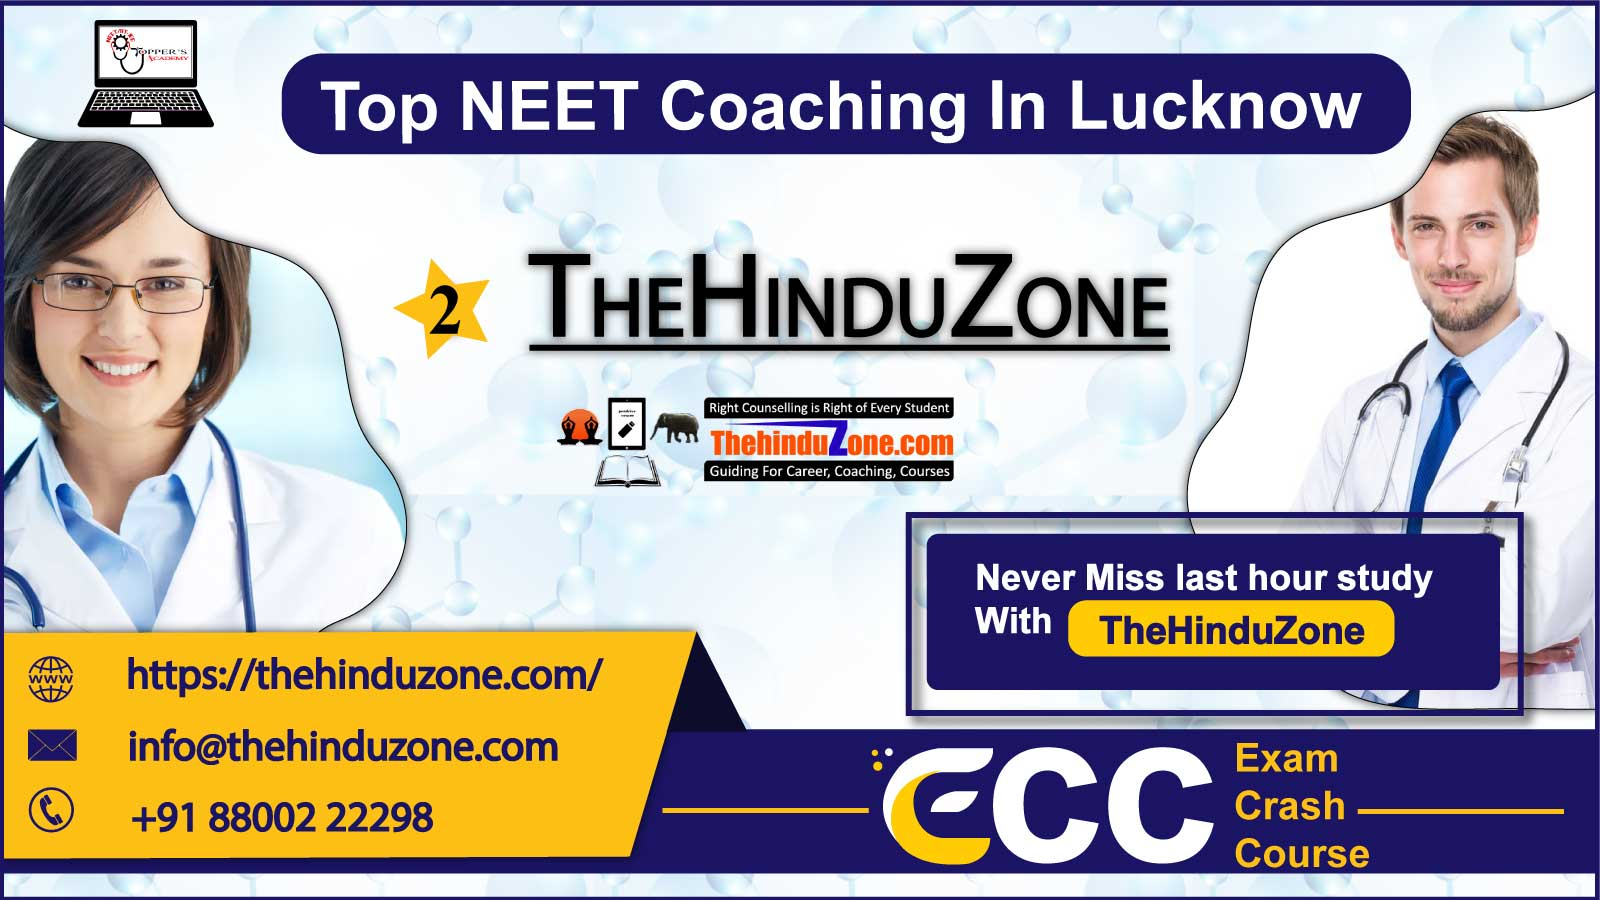 The Hinduzone NEET Coaching in Lucknow